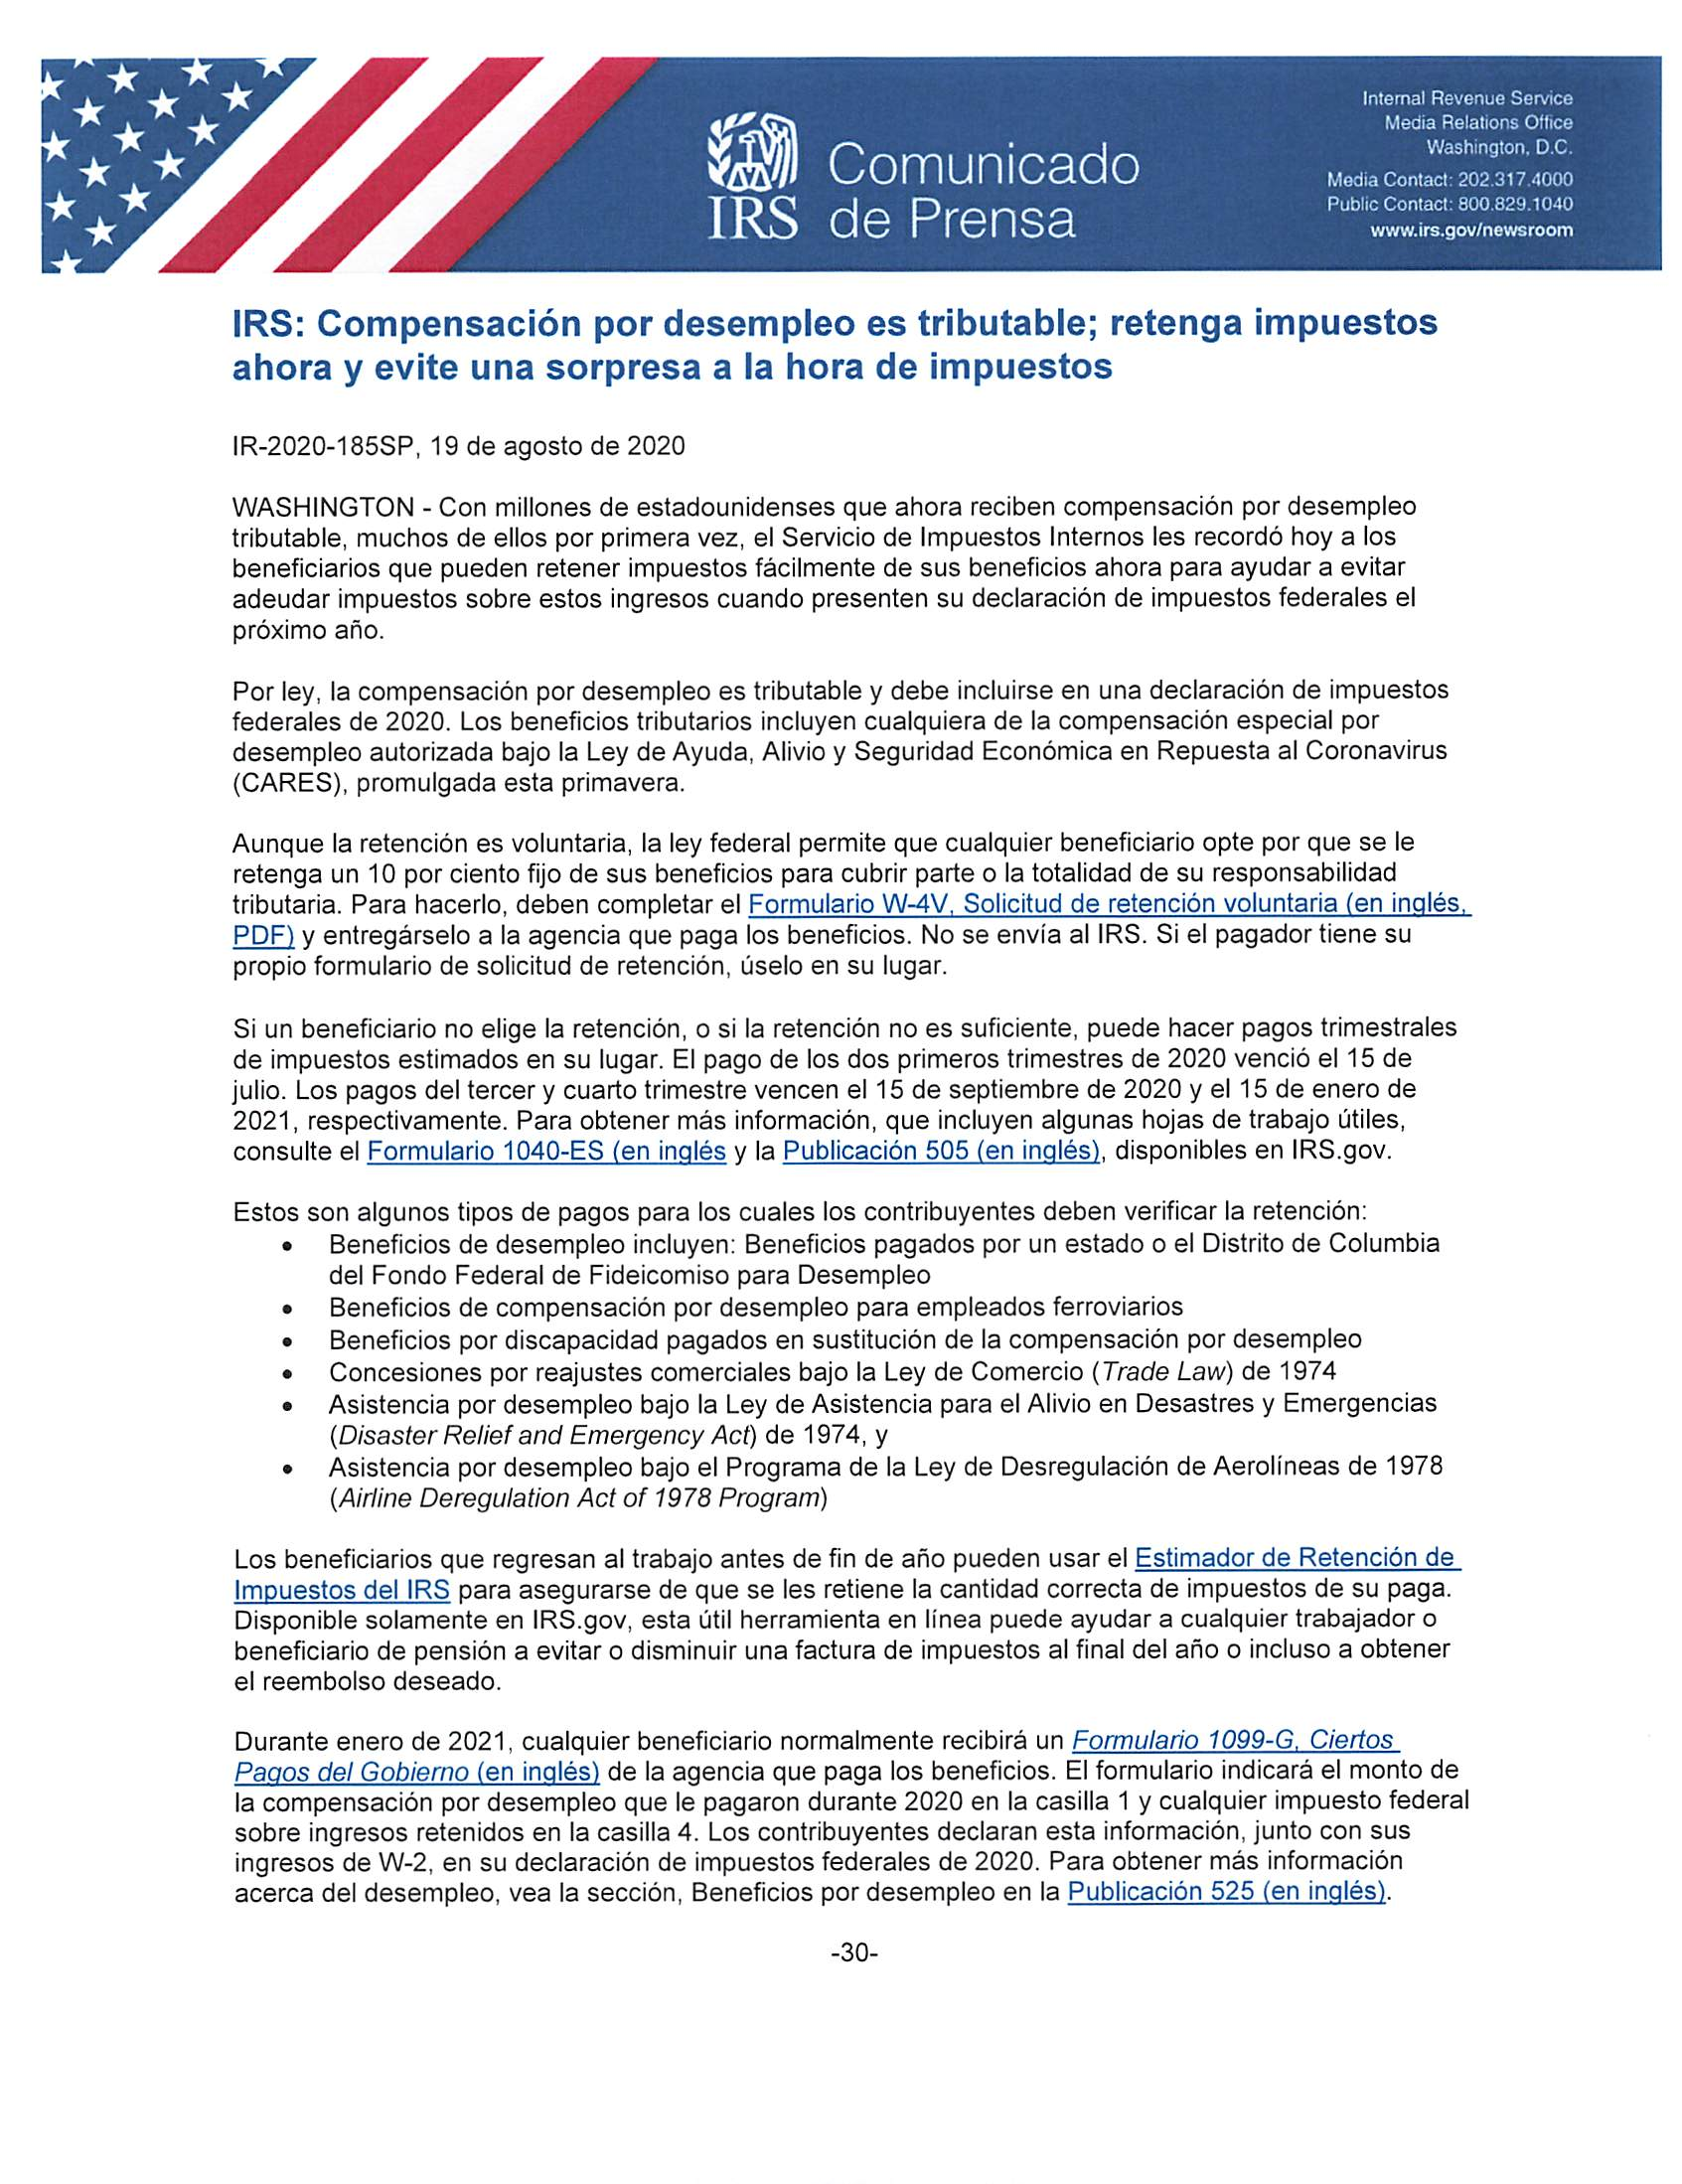 Unemployment Benefits IRS (Spanish)